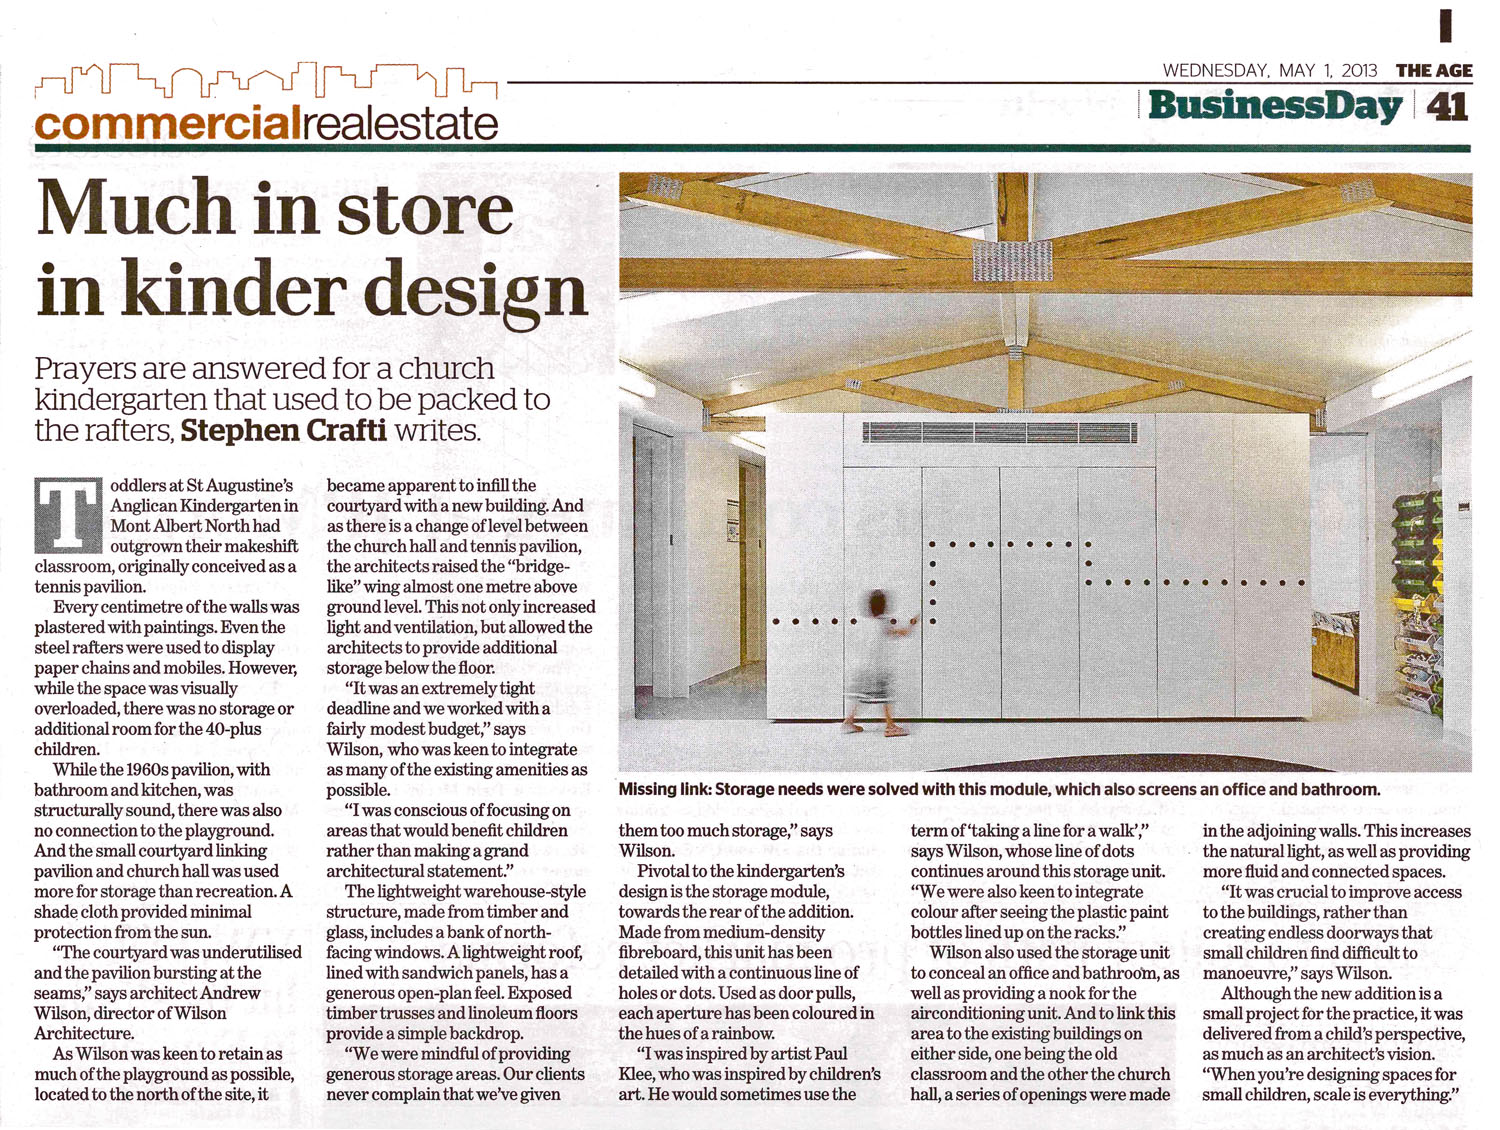 """""""Much in store in kinder design"""" The Age, May 01, 2013   Refer to article in online edition of The Age"""